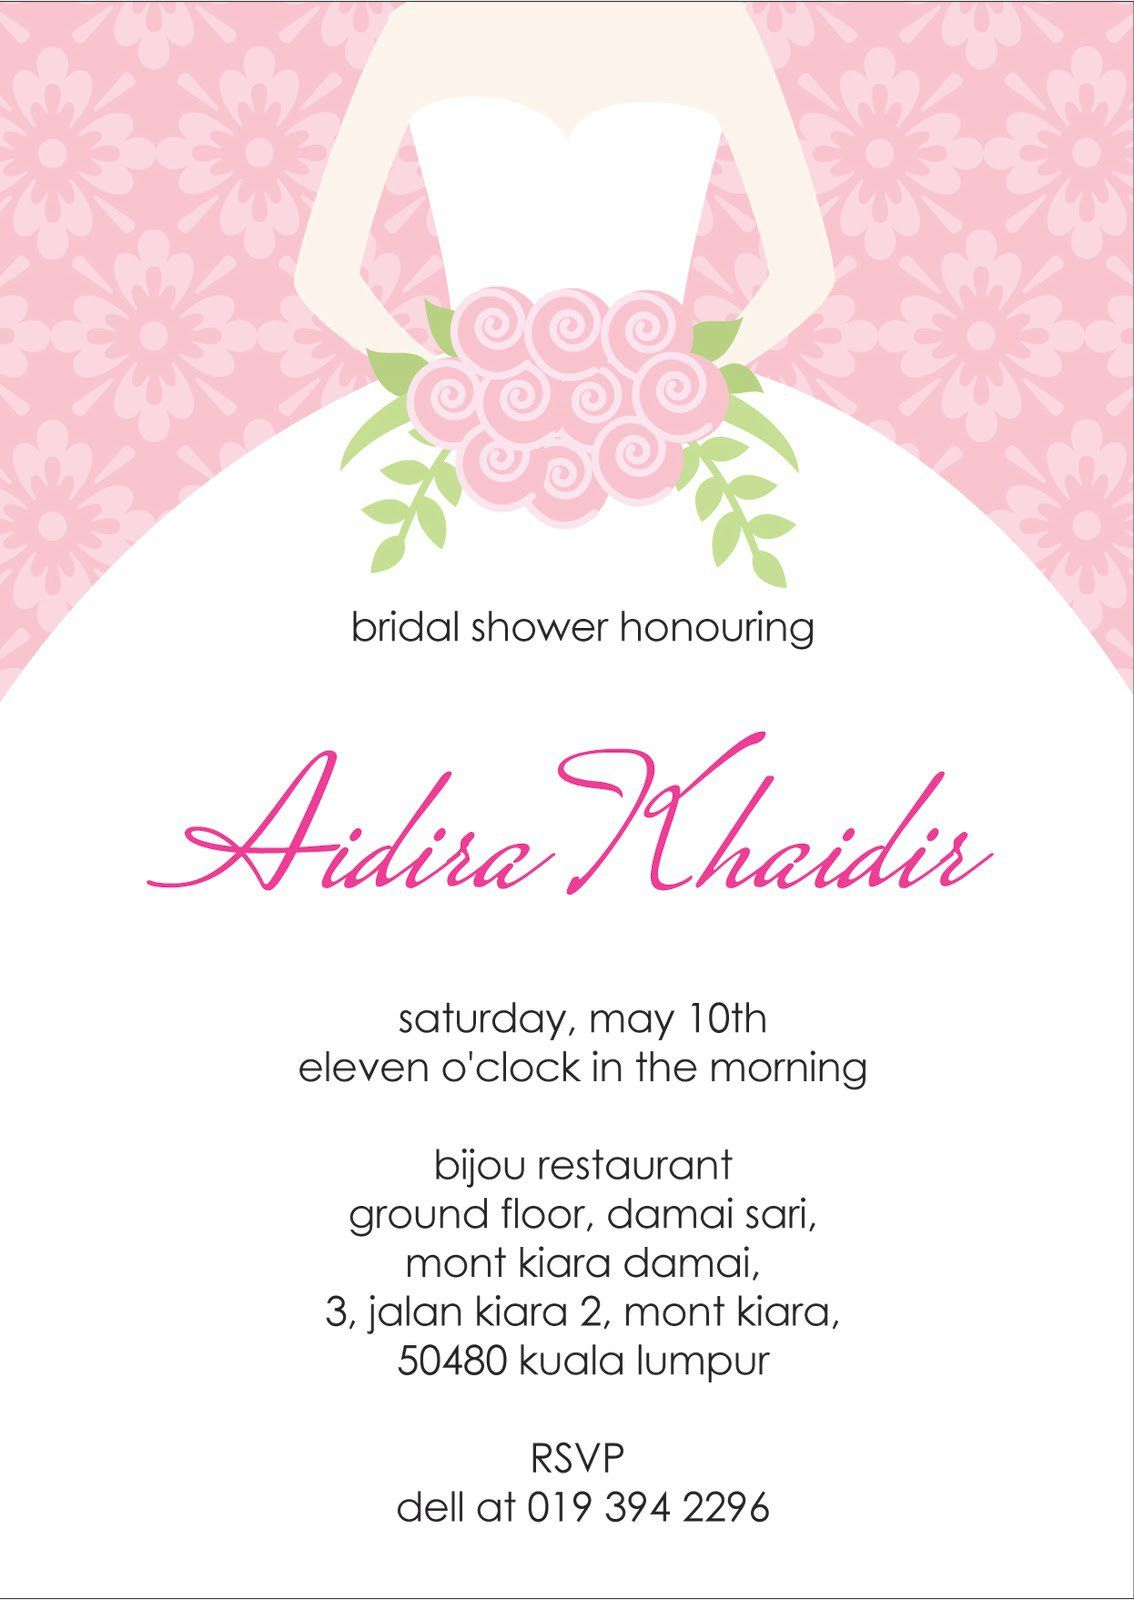 e147269f02a bridal-shower-invitation-wording-asking-for-money